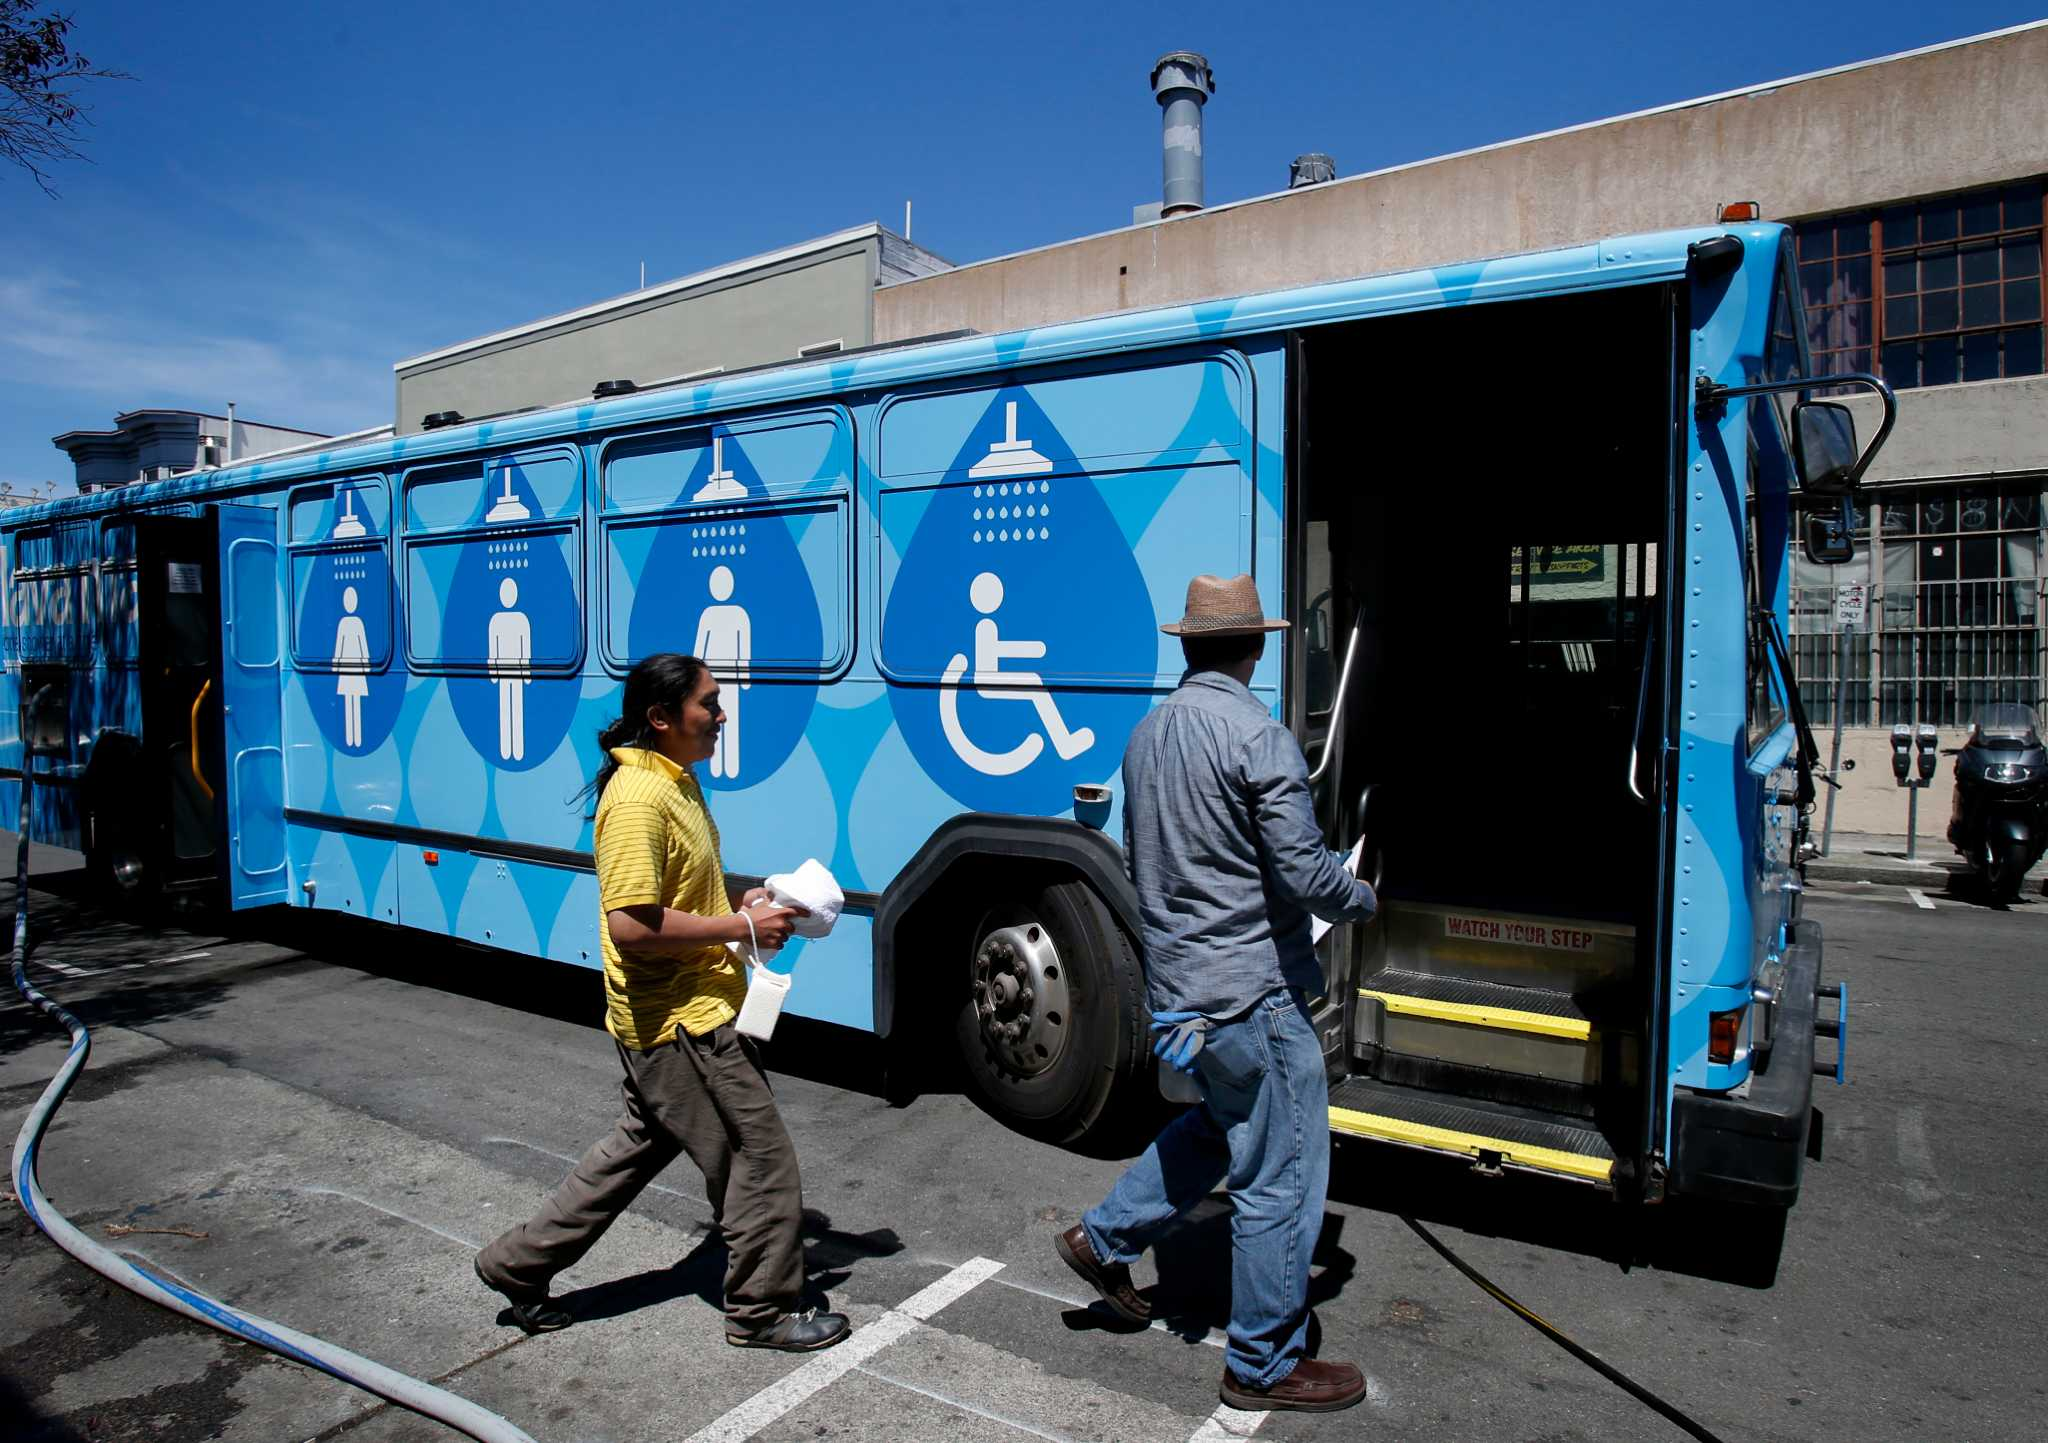 Accolades pour in for Lava Mae mobile shower stalls - SFGate